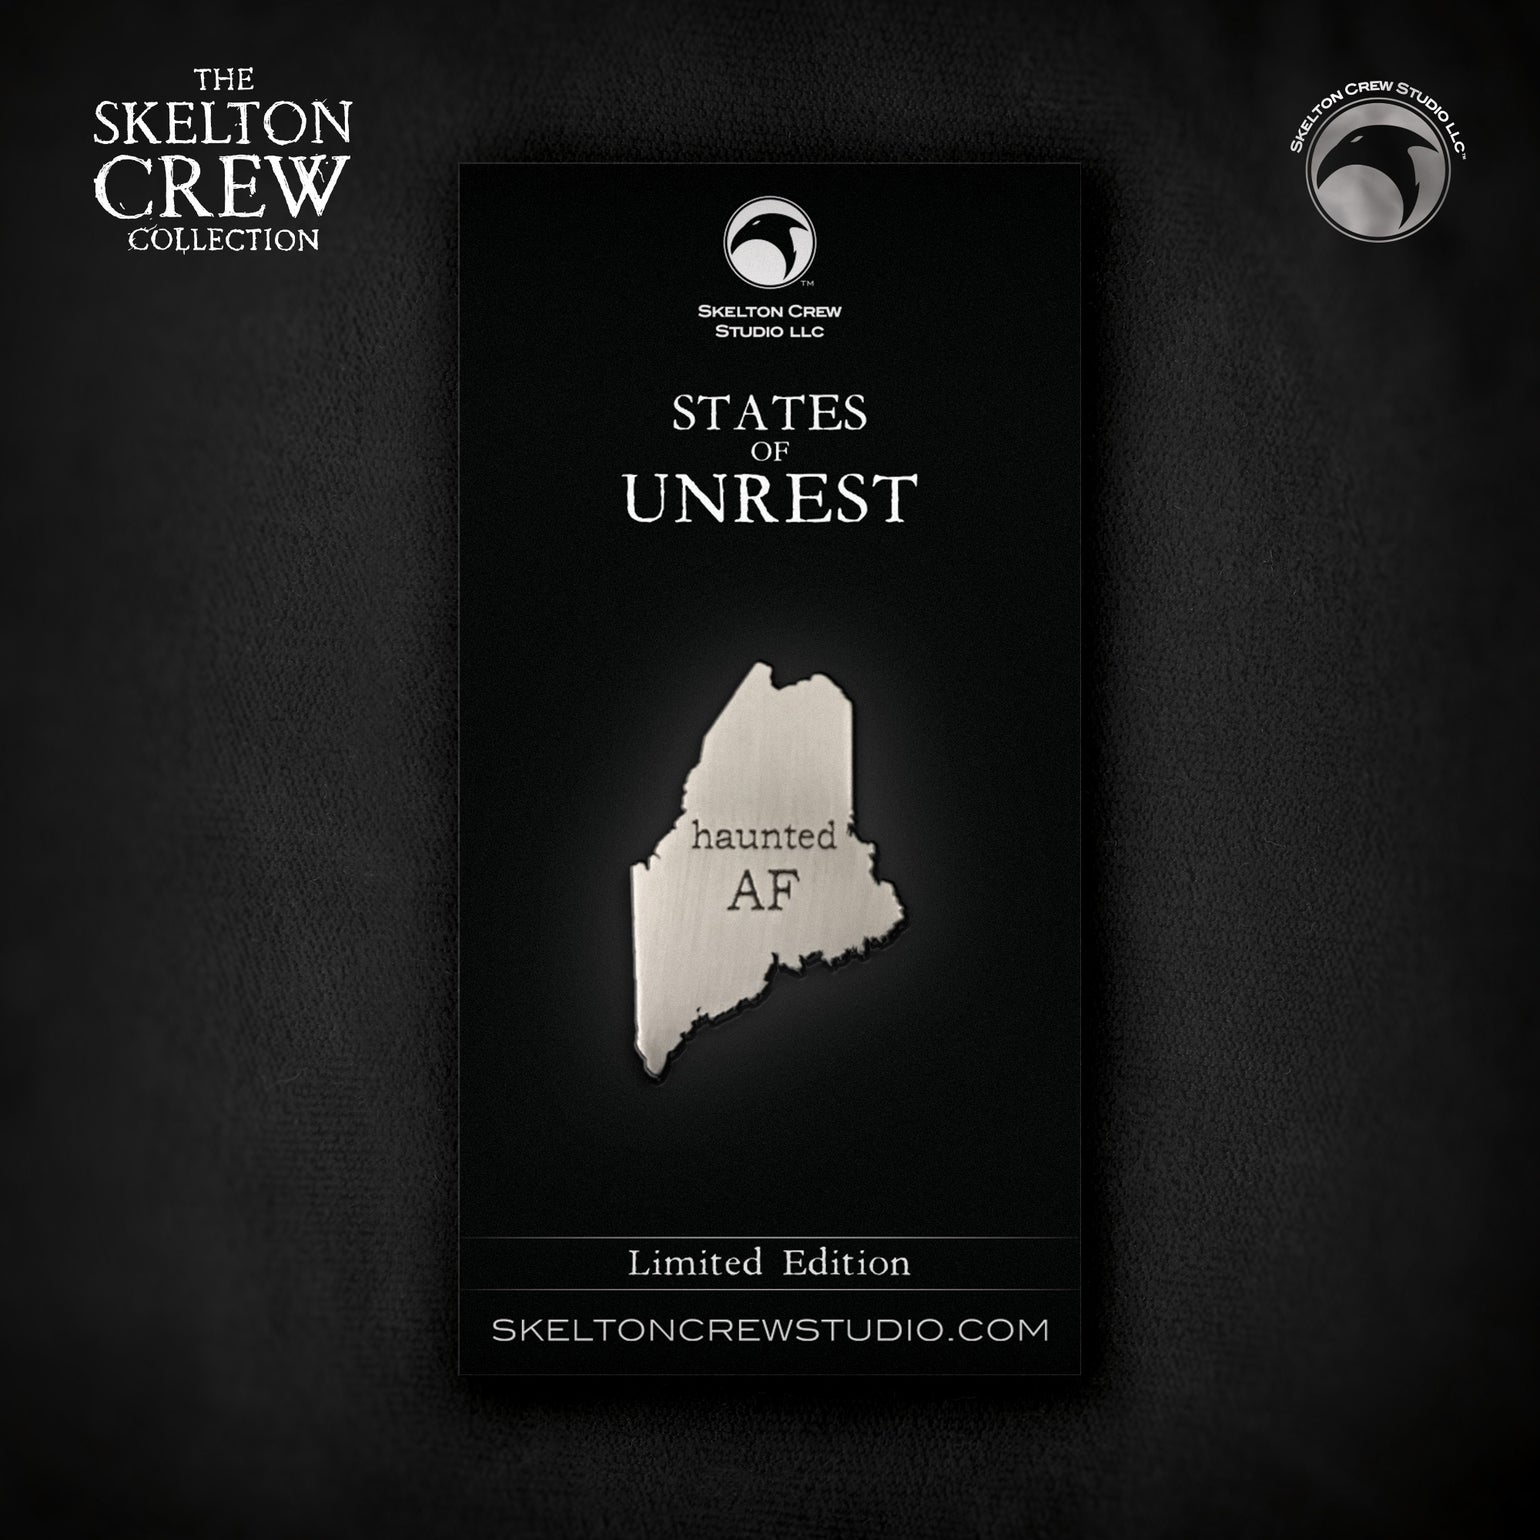 Image of The Skelton Crew Collection: States of Unrest Maine Haunted AF pin!